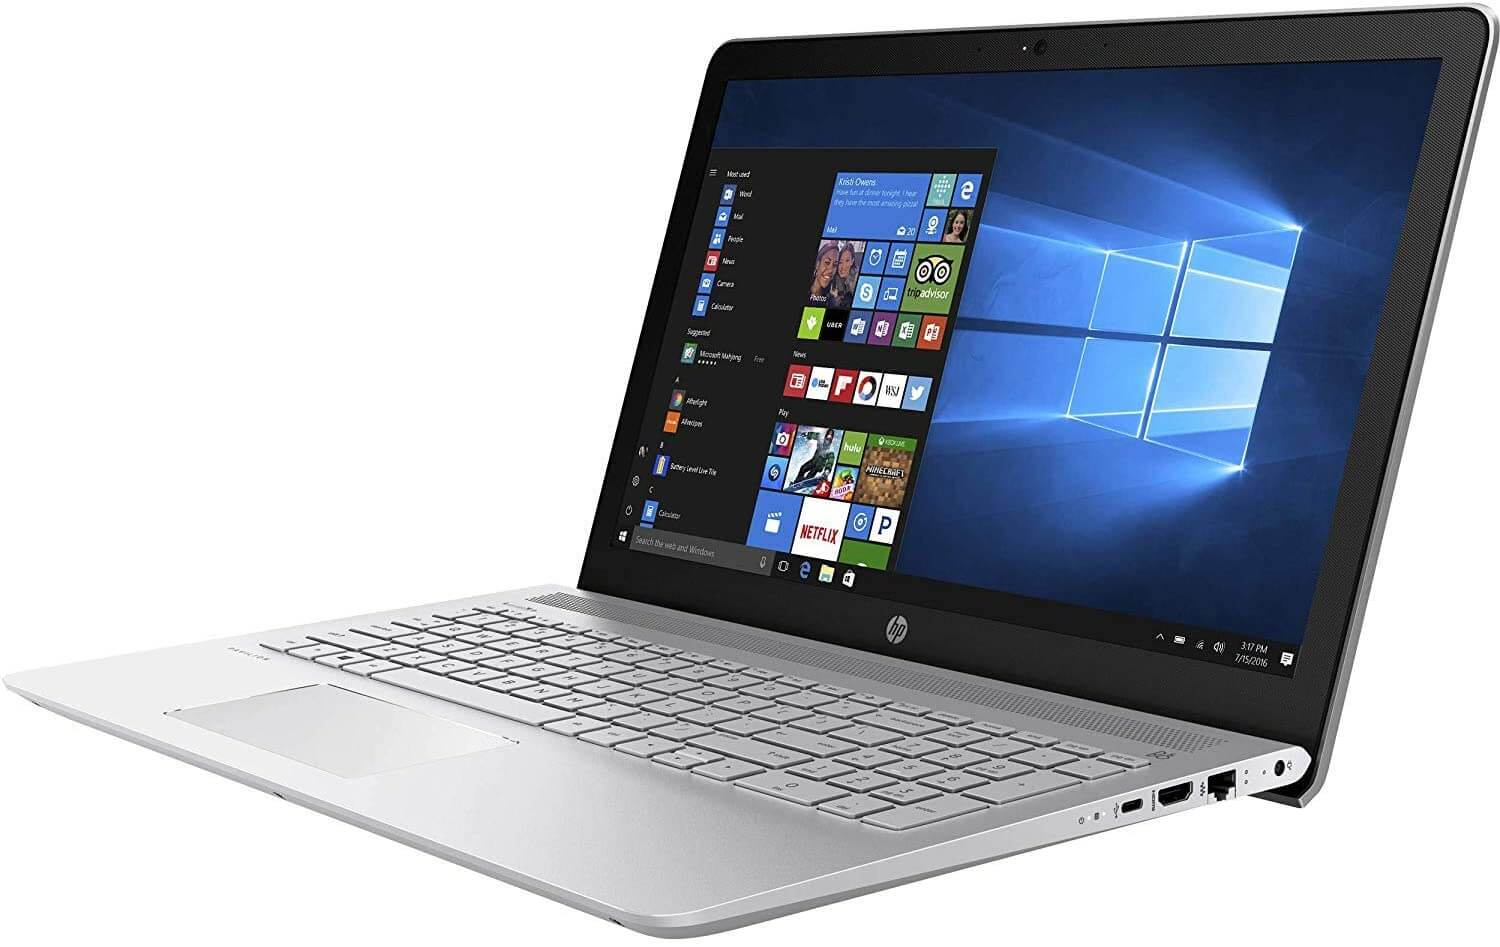 HP Pavilion 15 (Newest) - Touchscreen Light Gaming Laptop Under $600